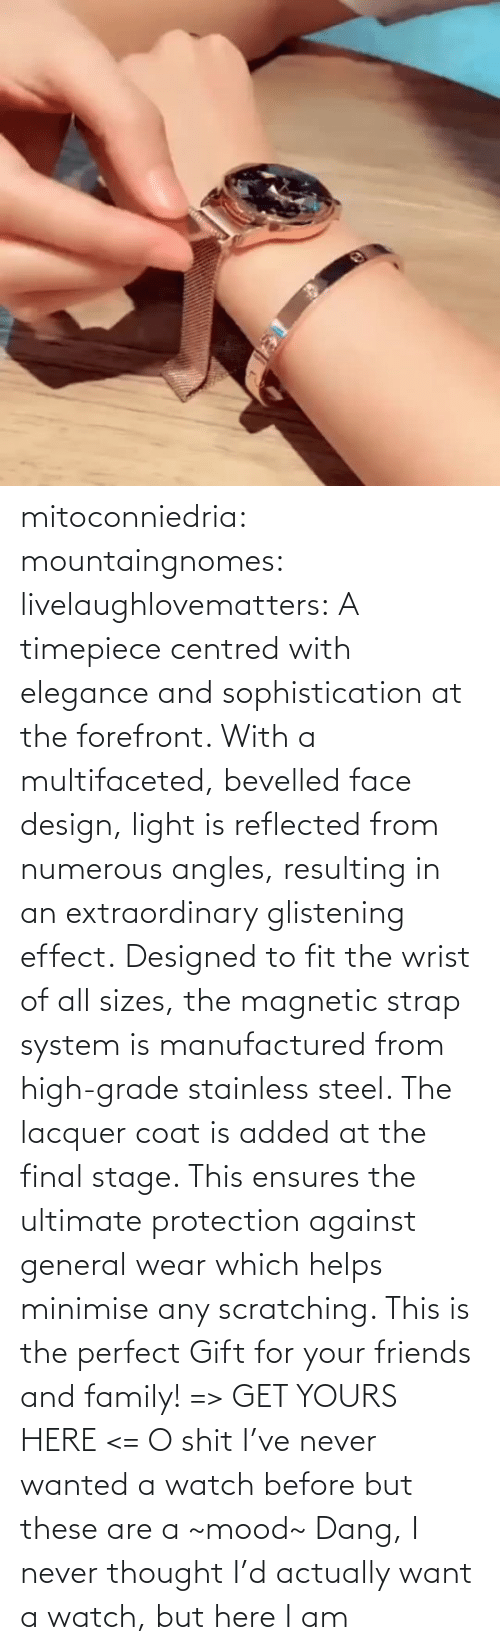 wear: mitoconniedria: mountaingnomes:   livelaughlovematters:  A timepiece centred with elegance and sophistication at the forefront. With a multifaceted, bevelled face design, light is reflected from numerous angles, resulting in an extraordinary glistening effect. Designed to fit the wrist of all sizes, the magnetic strap system is manufactured from high-grade stainless steel. The lacquer coat is added at the final stage. This ensures the ultimate protection against general wear which helps minimise any scratching. This is the perfect Gift for your friends and family! => GET YOURS HERE <=  O shit I've never wanted a watch before but these are a ~mood~    Dang, I never thought I'd actually want a watch, but here I am